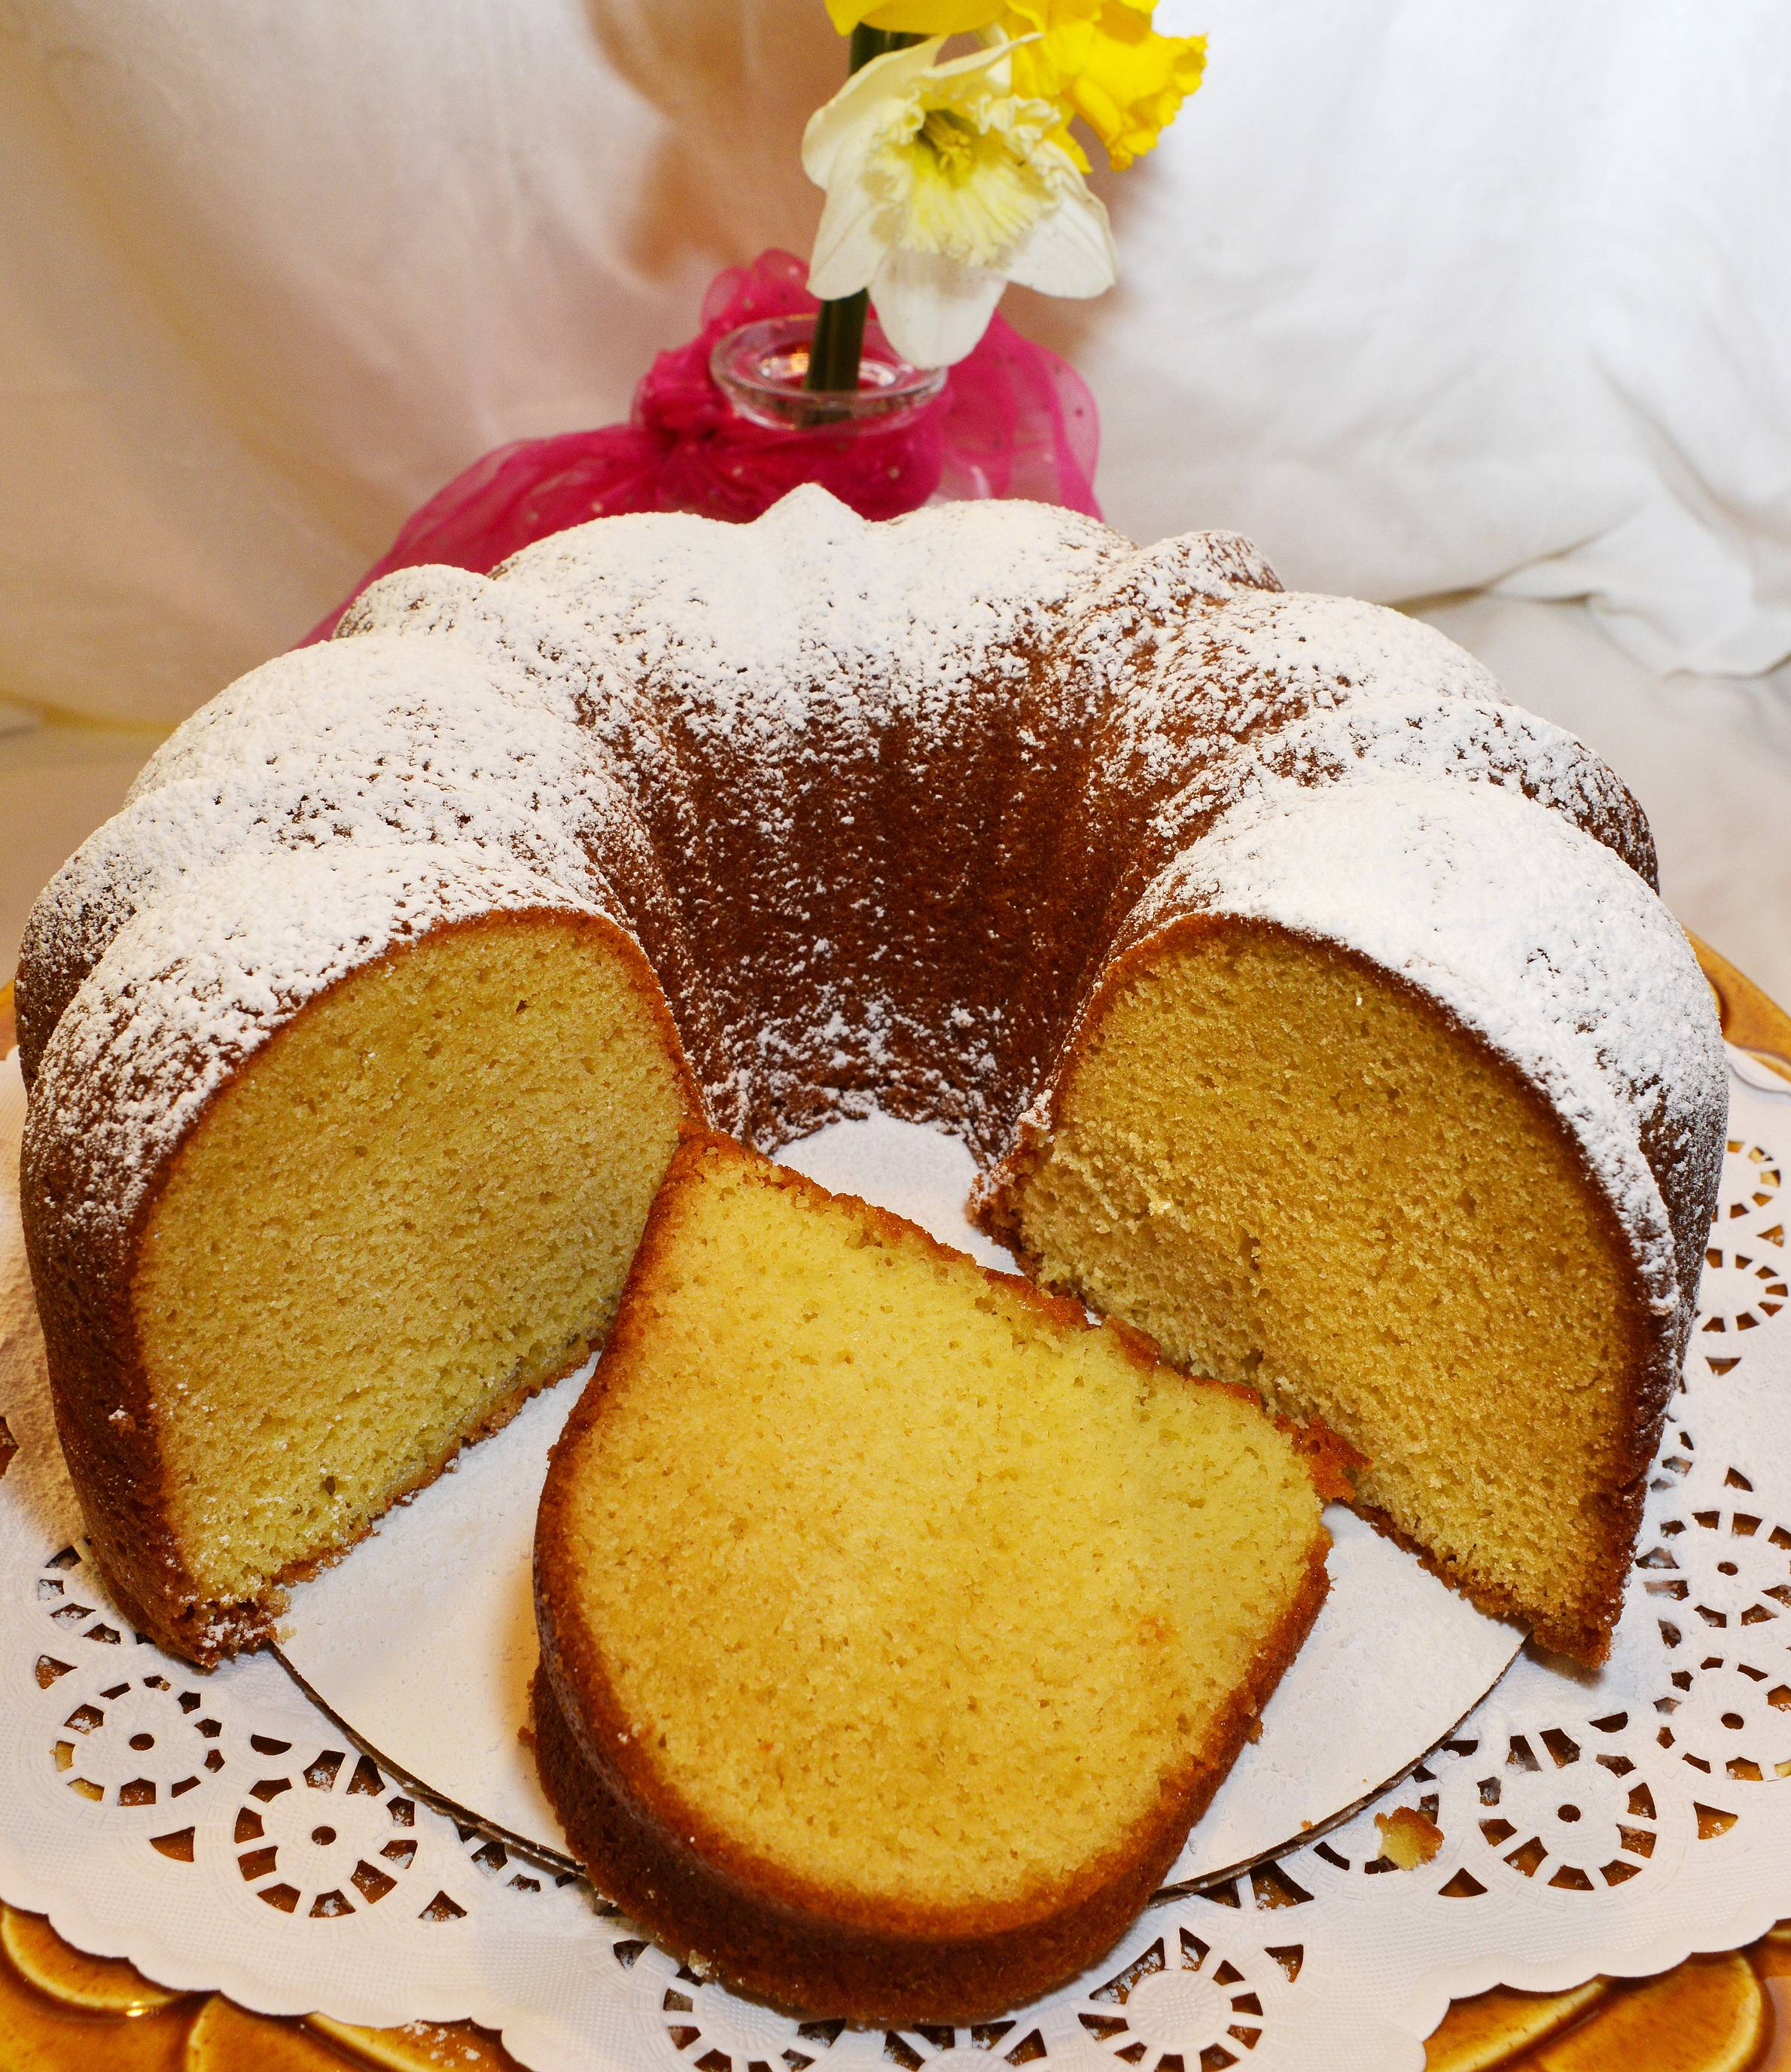 Olive oil helps balance the moistness and sweetness of Annie Overboe's Springtime Poundcake.